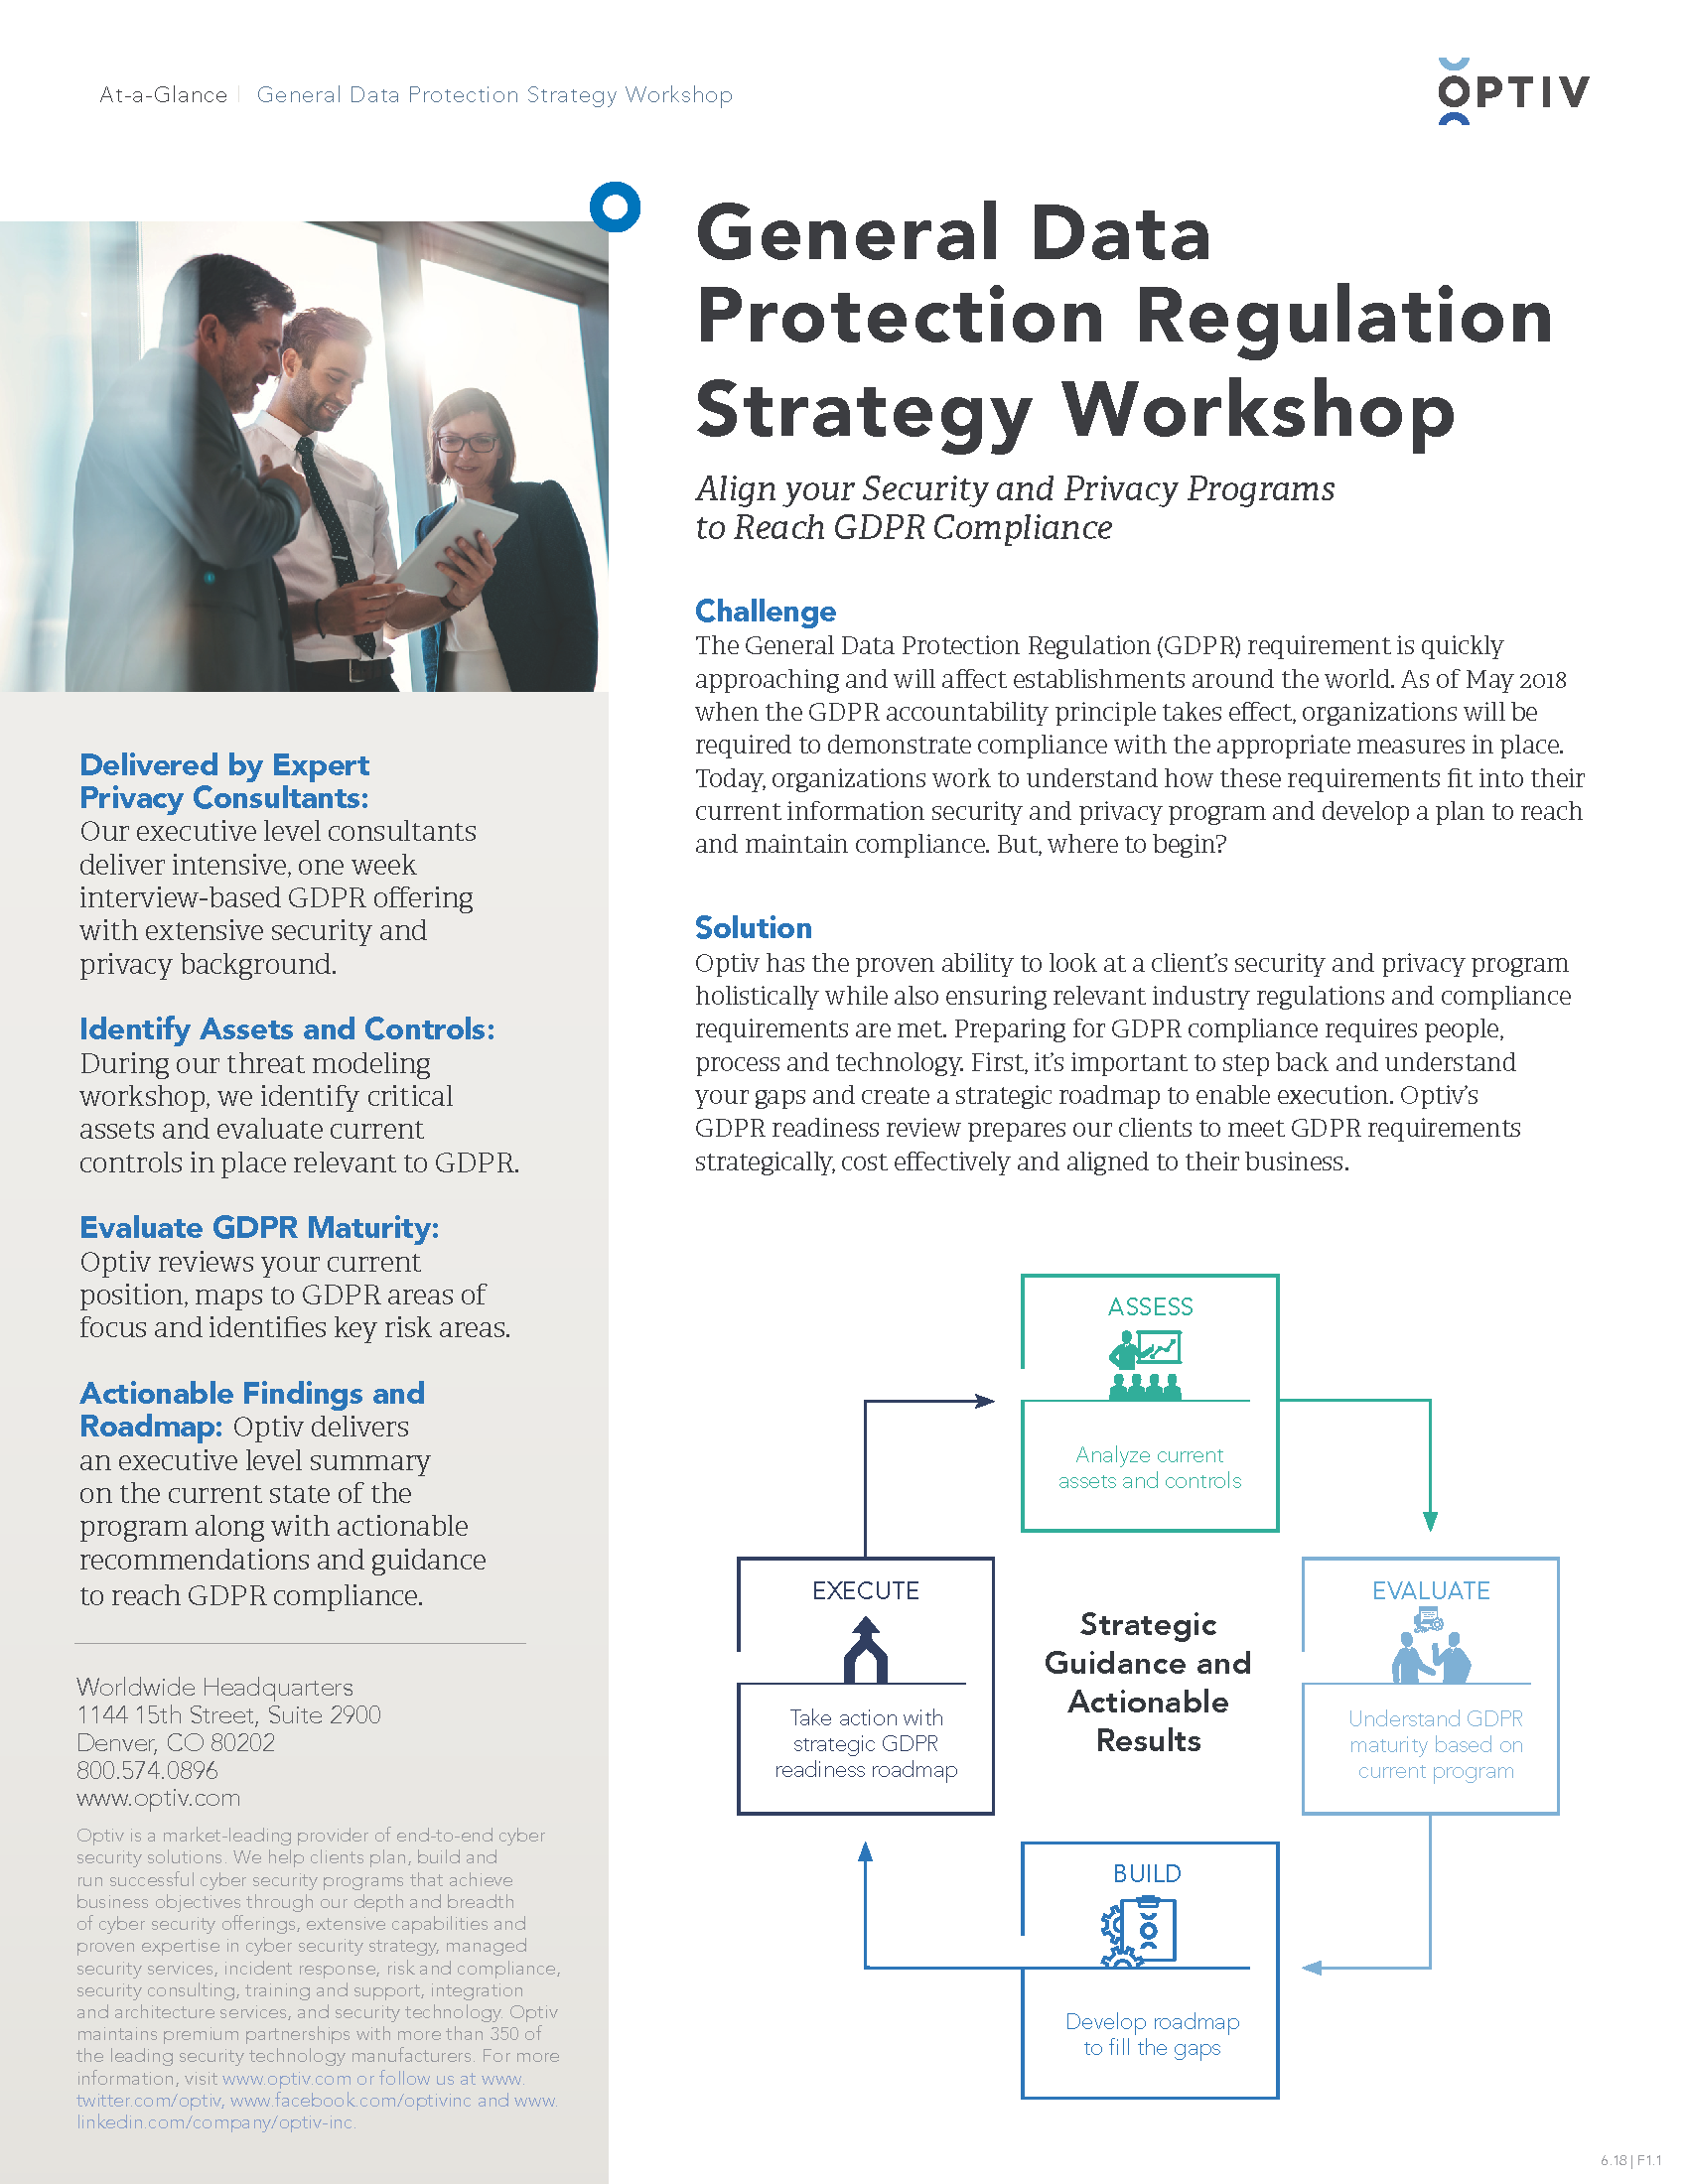 General Data Protection Regulation Readiness Review